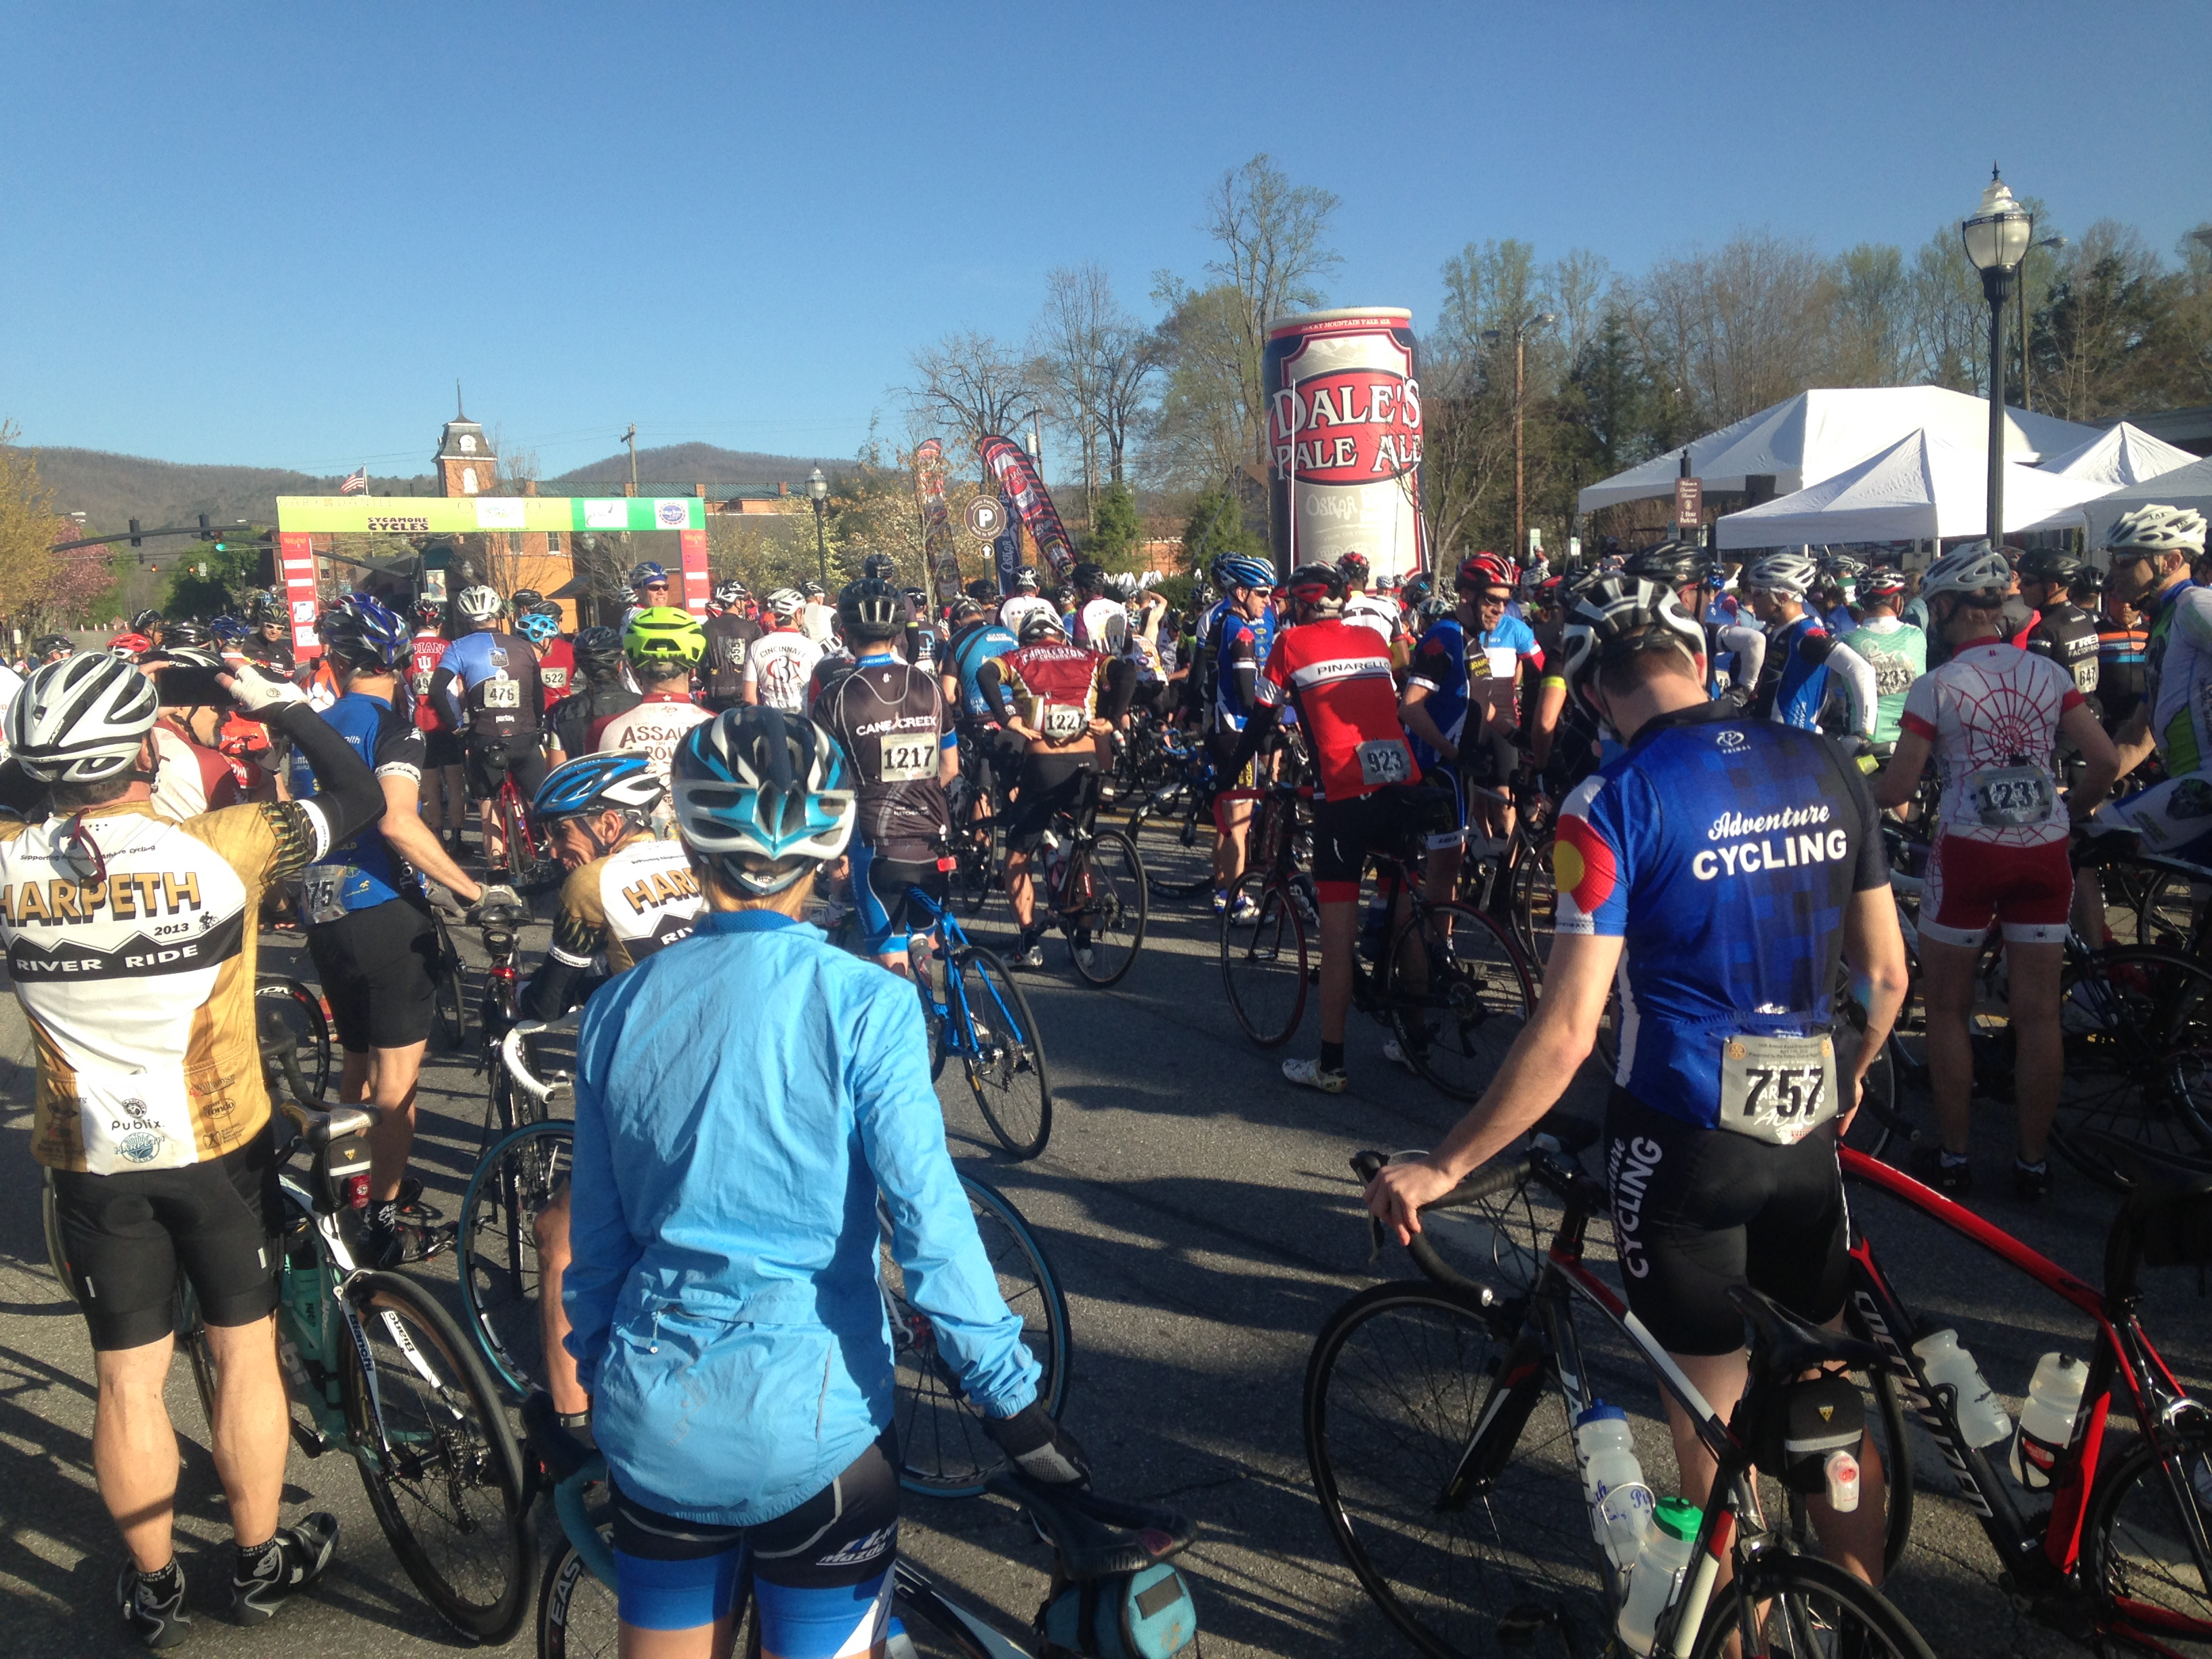 Bike Tour of the Carolinas draws over 1,000 riders